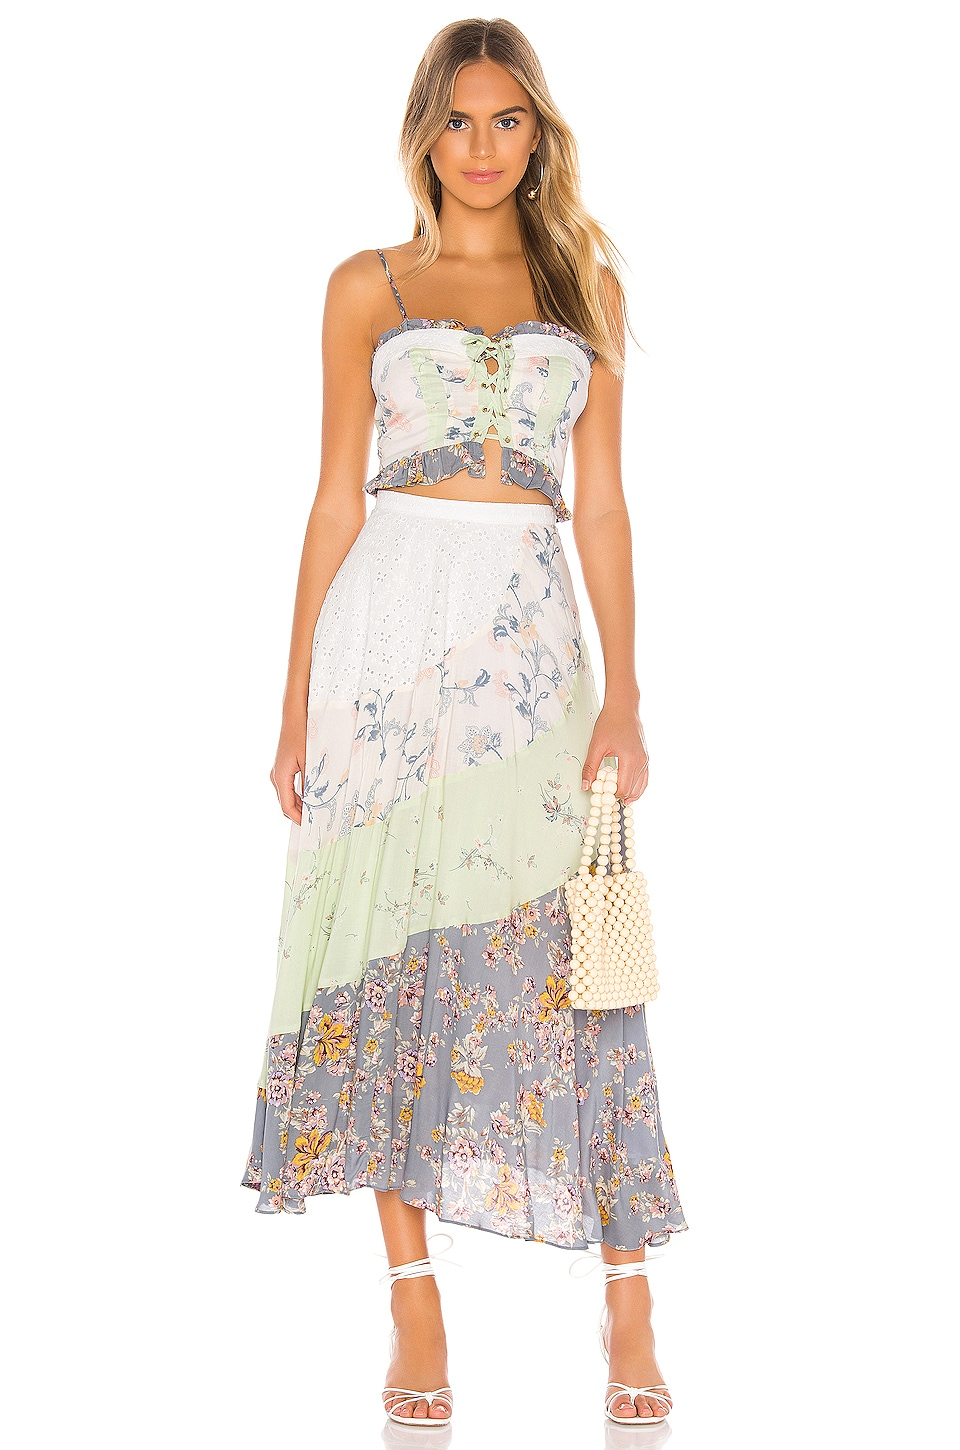 Free People In The Flowers Set in Light Blue